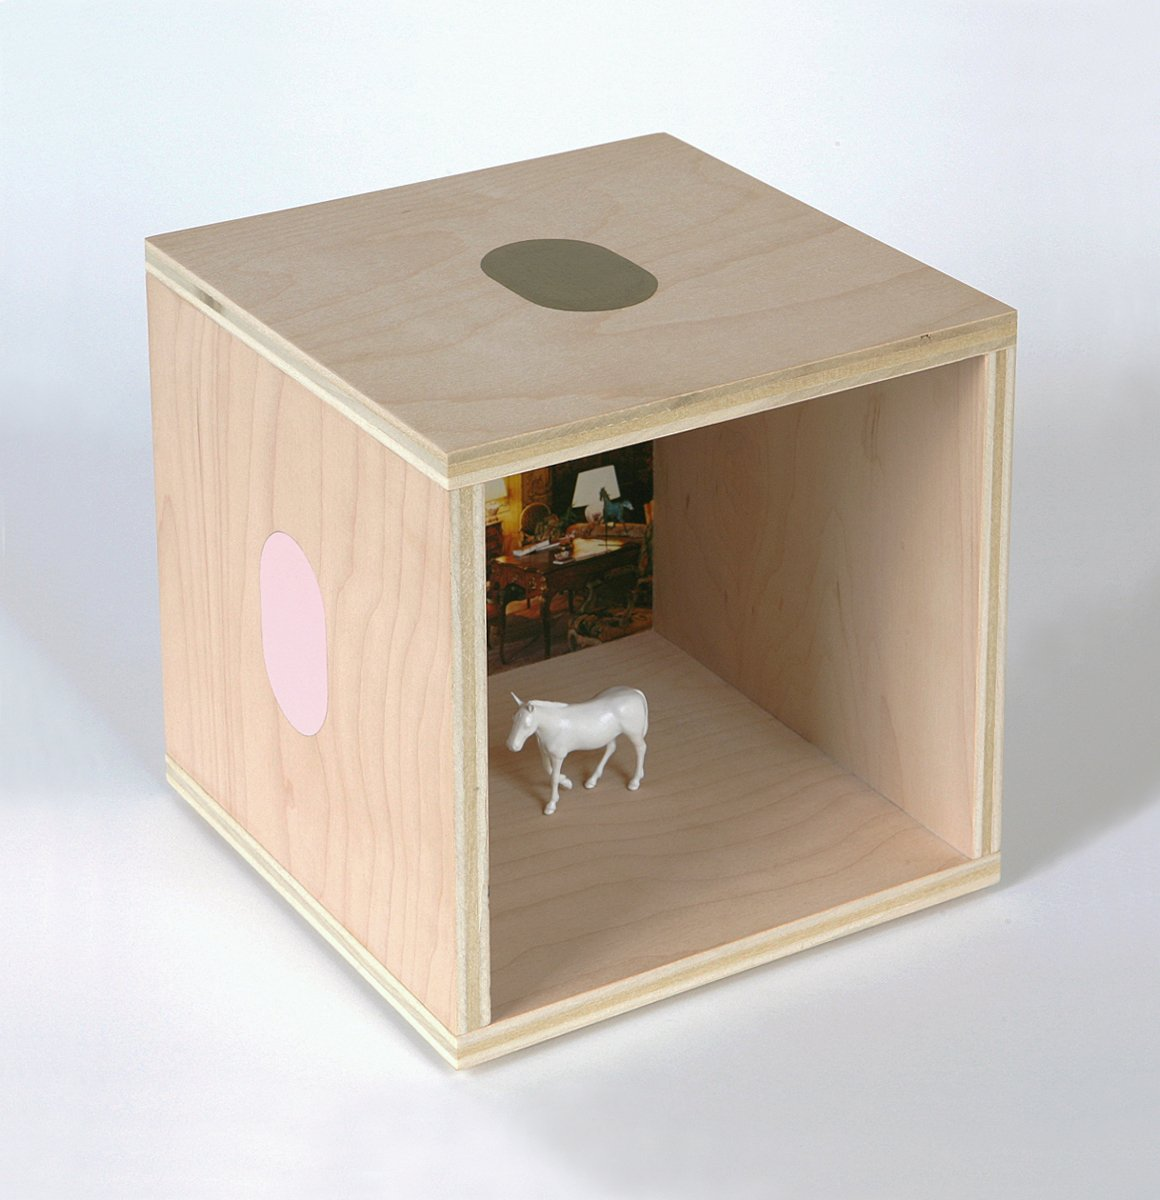 A plywood cube with ovals on the outside and a small white mule model inside.